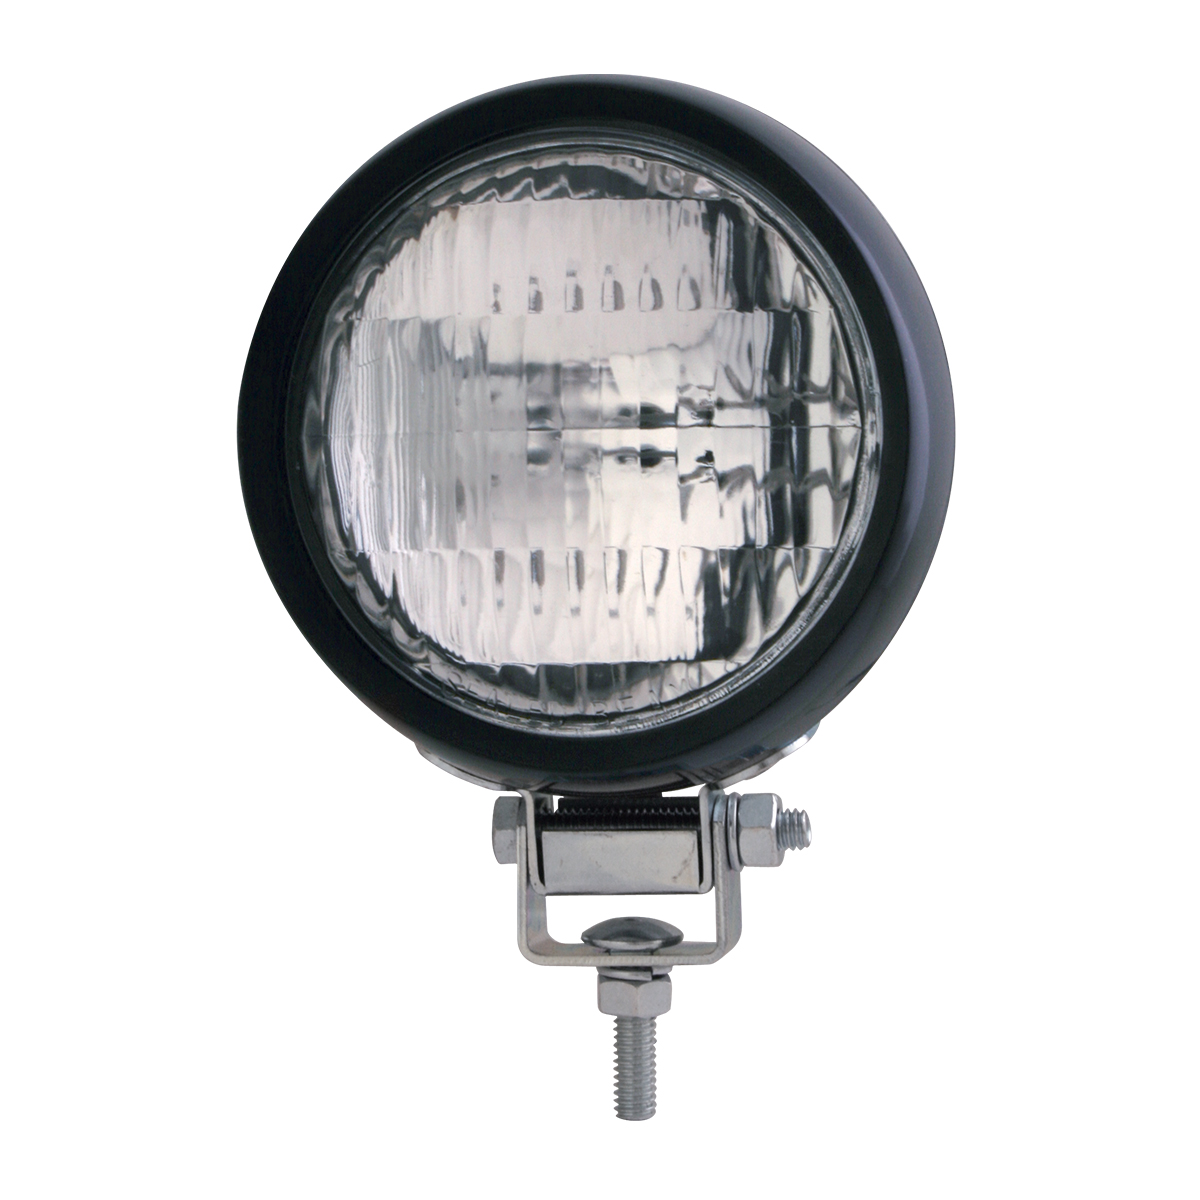 """#80417 4 ½"""" Tractor Utility Light - Front View"""